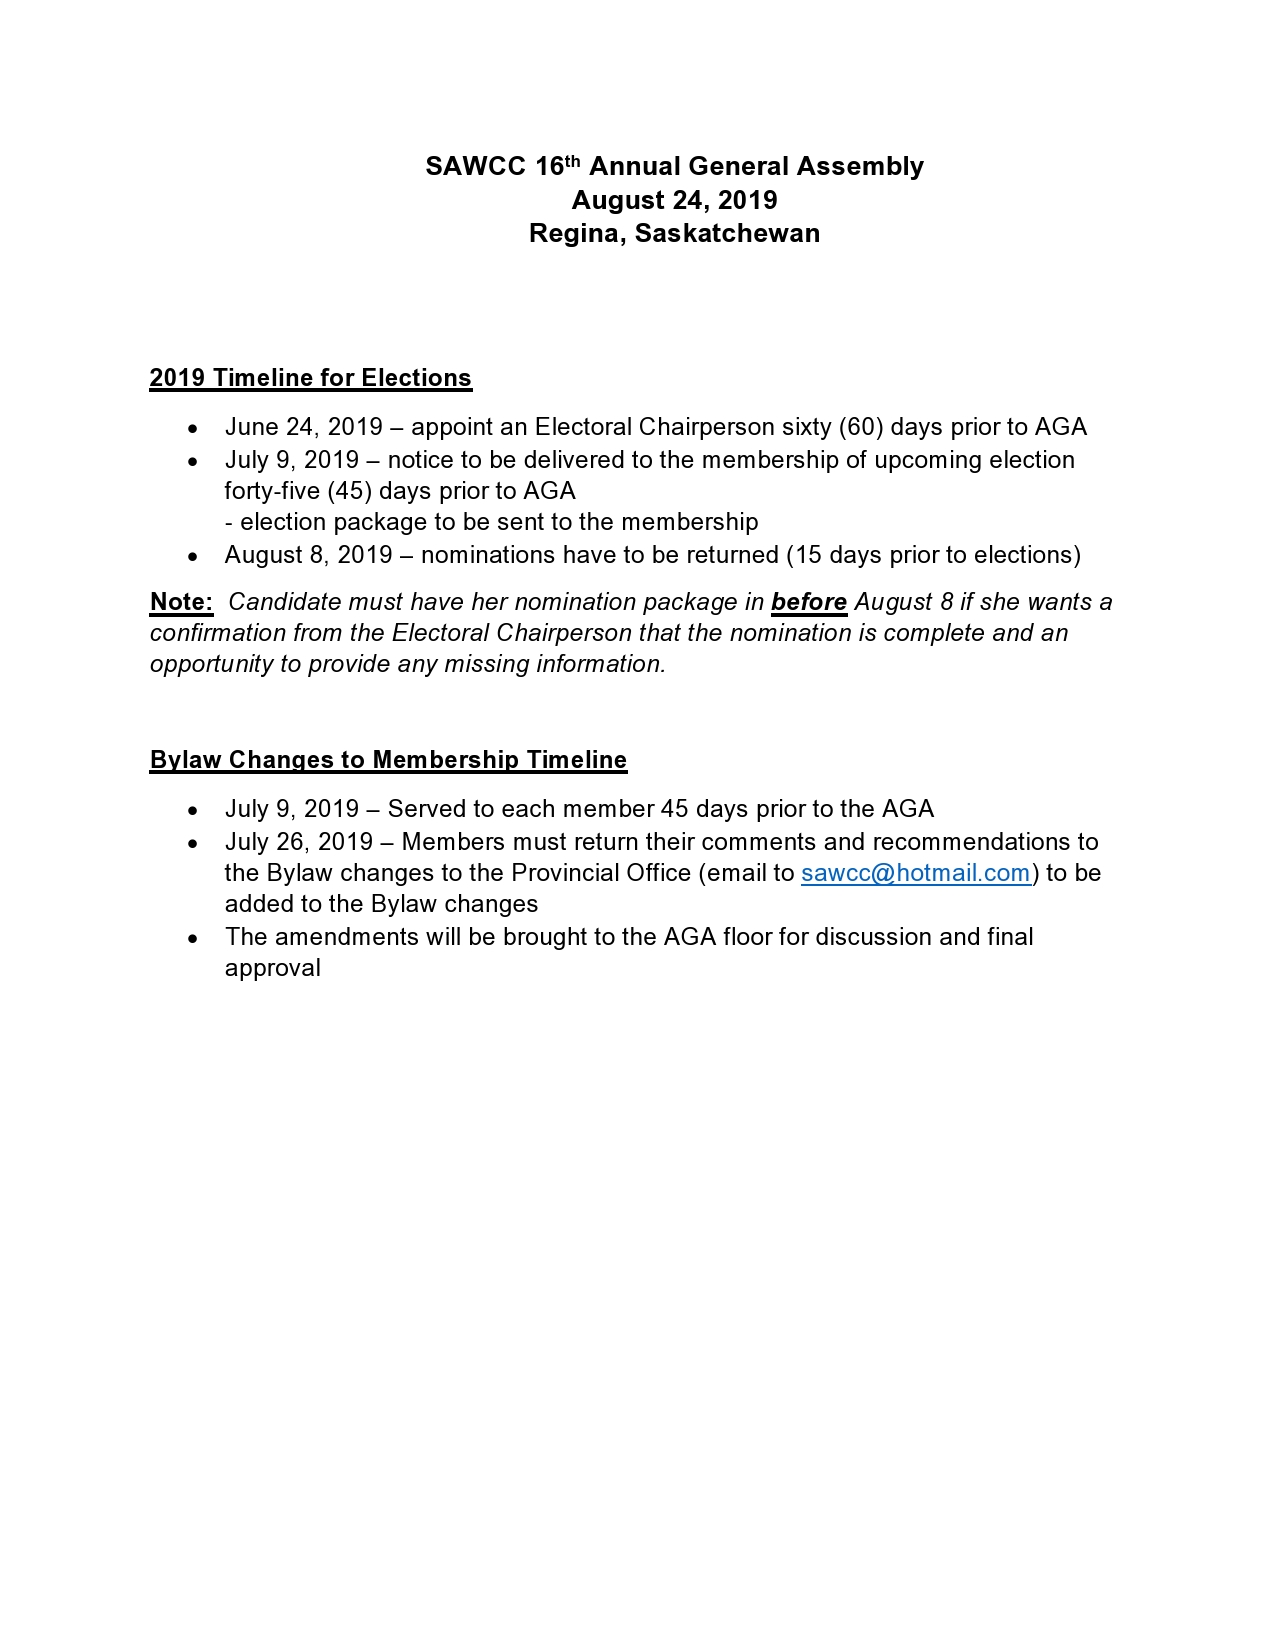 2019 SAWCC Timeline for Elections -